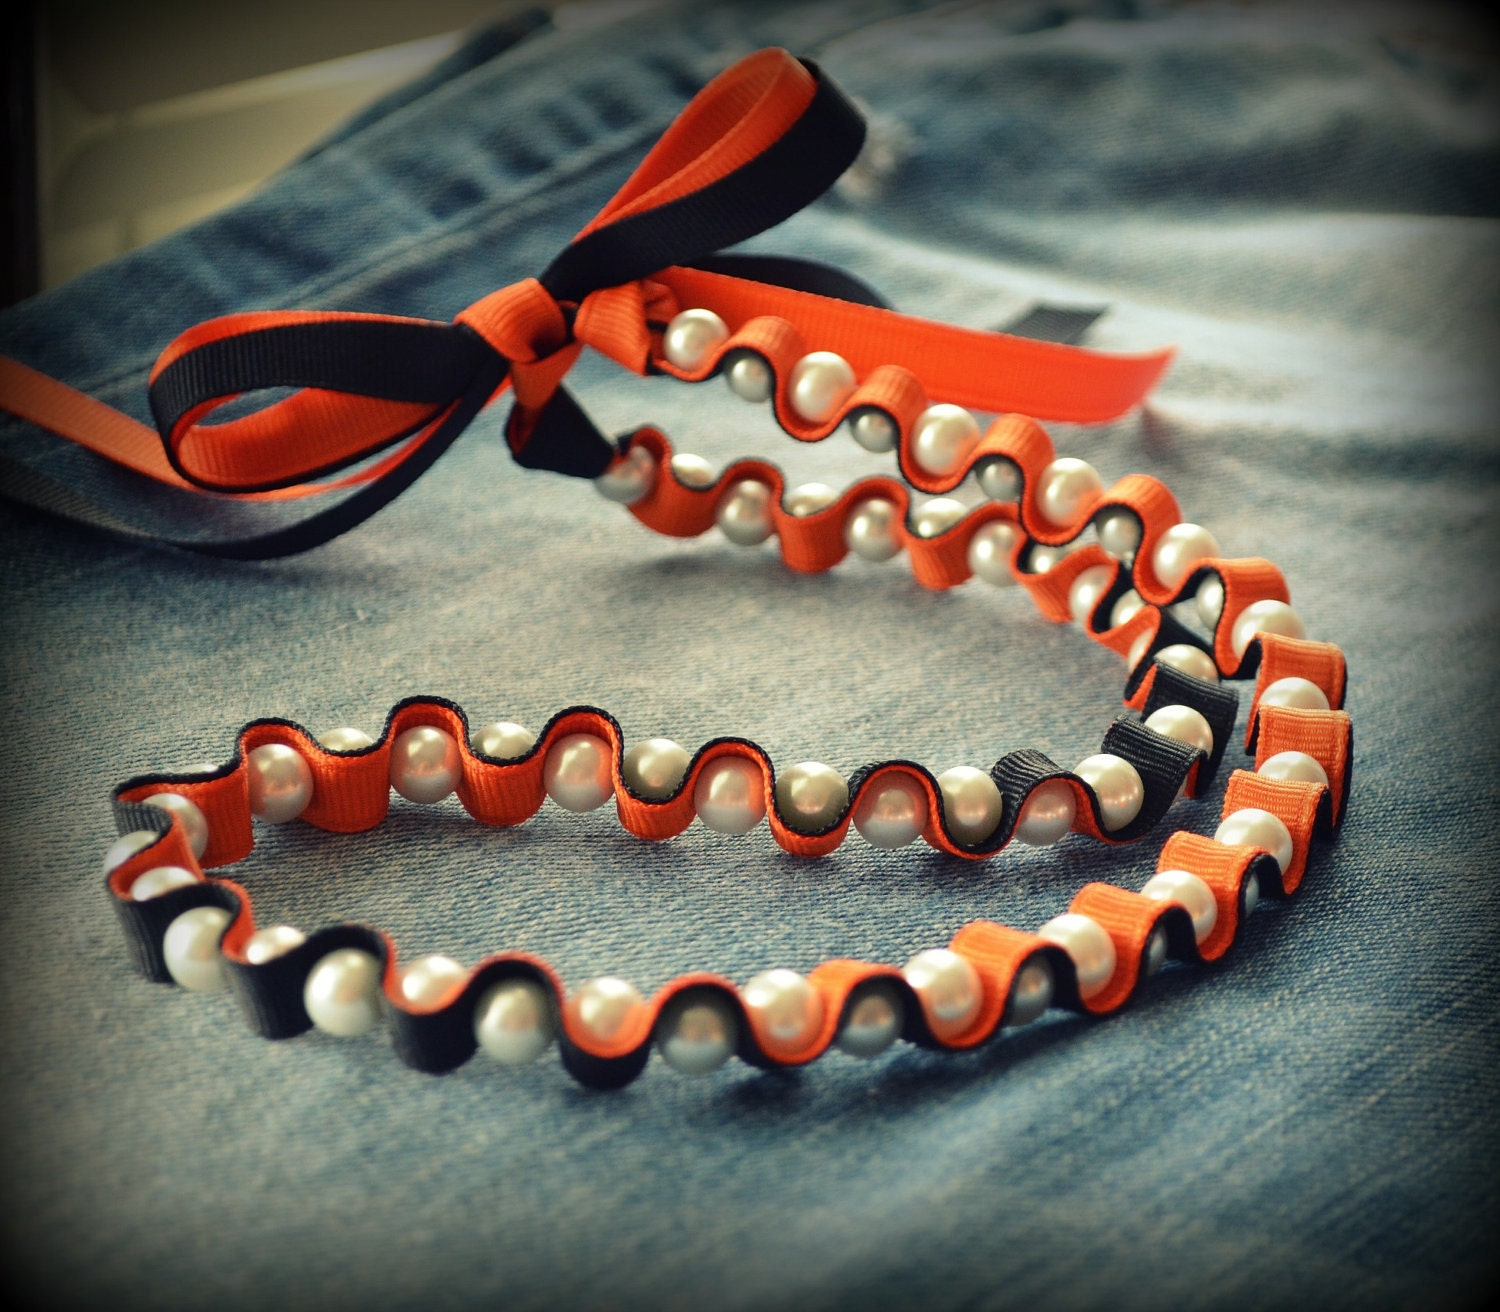 Lady Super Fan Collection - Ribbon and Pearl Necklace - Team Colors - Team Spirit - in Black and Tangerine